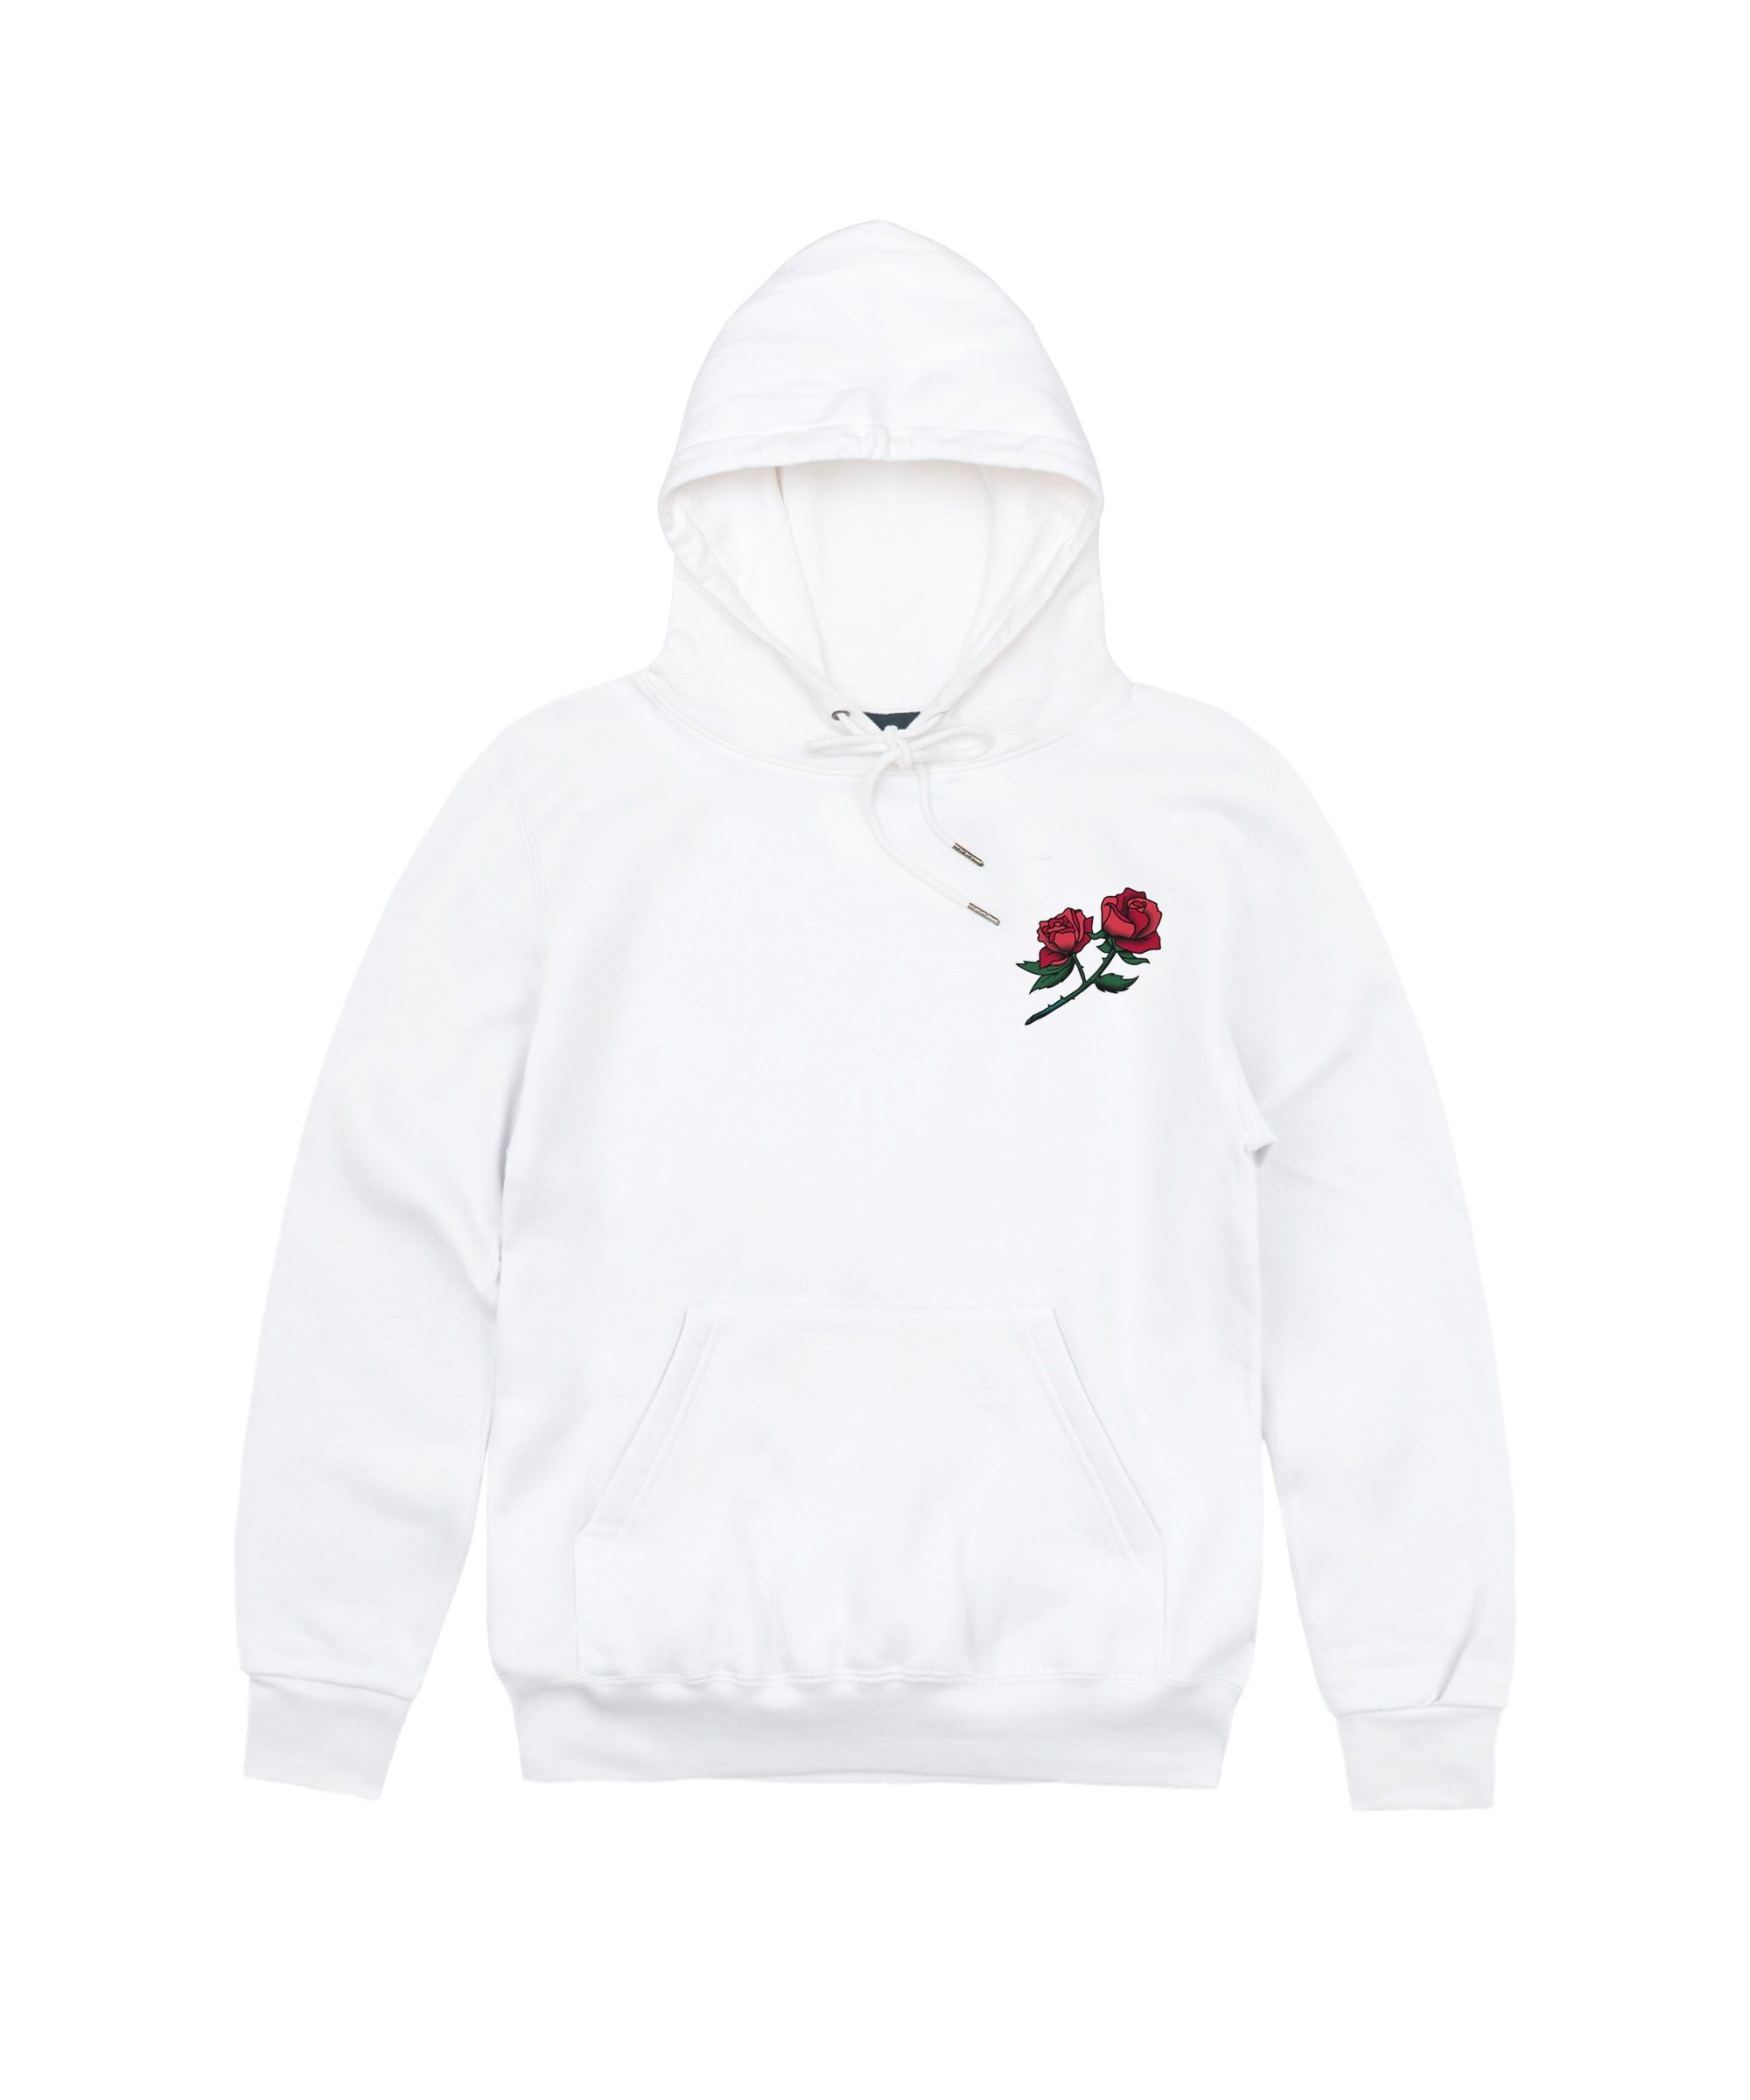 Hoodie Blanc Wild Rose Bleue | Vetements, Roses bleues, Bleu